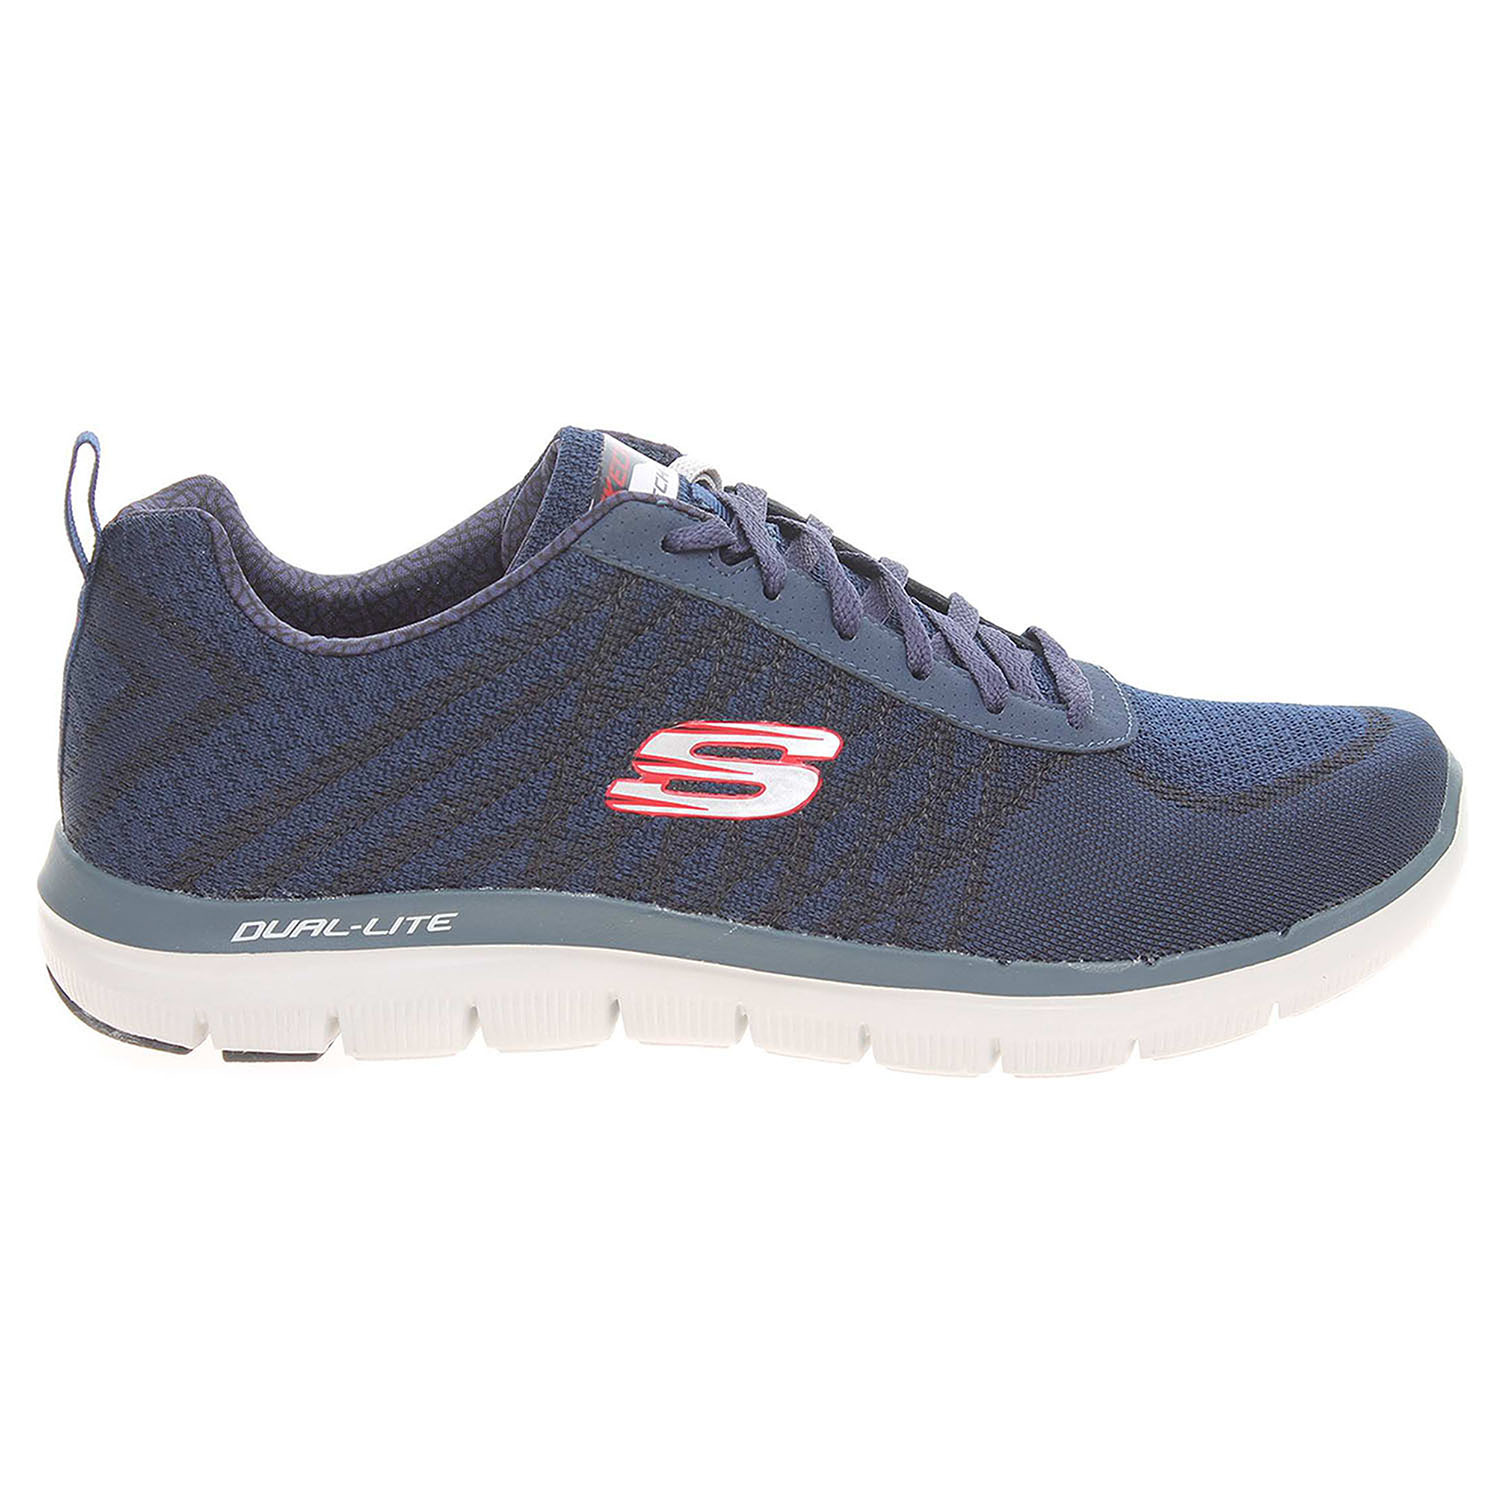 Ecco Skechers Flex Advantage 2.0 Golden Point navy-red 24200200